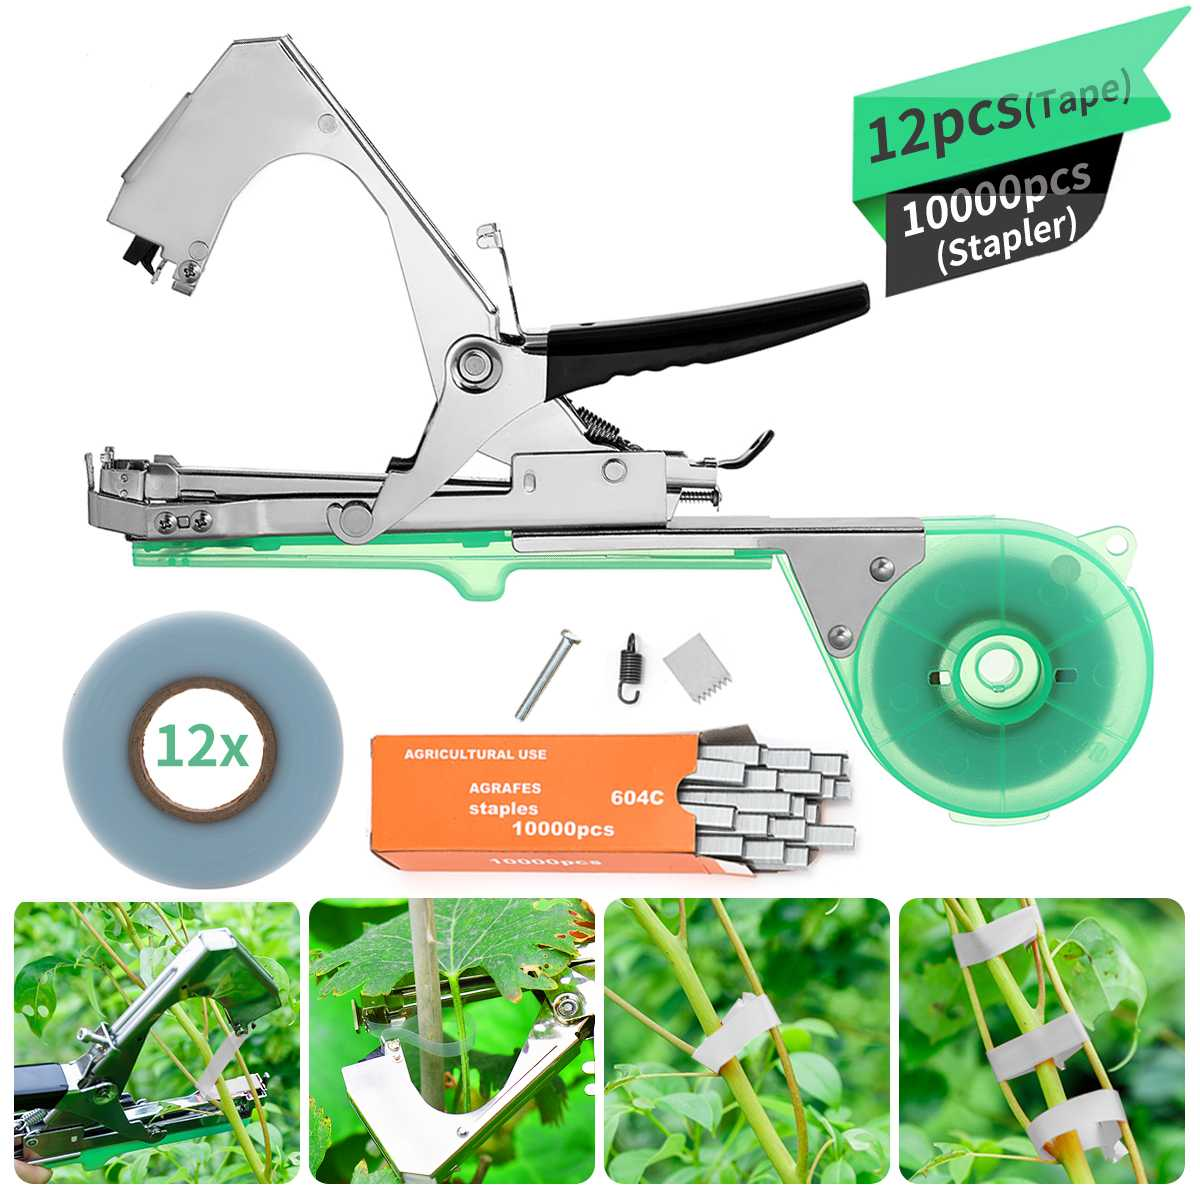 1 Set New High Quality Plant Branch Hand Tying Staples+Tapener+Tapes Binding Machine Flower Vegetabl